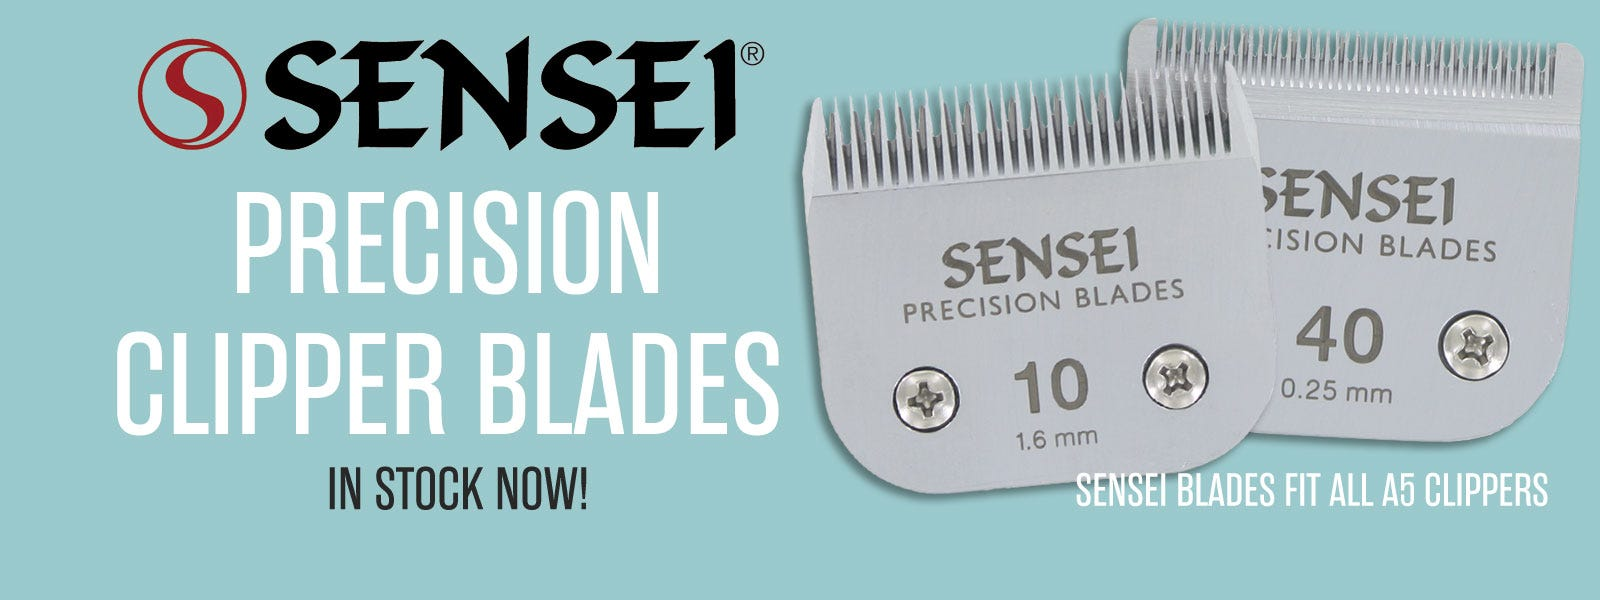 SENSEI PRECISION A5 CLIPPER BLADES IN STOCK!